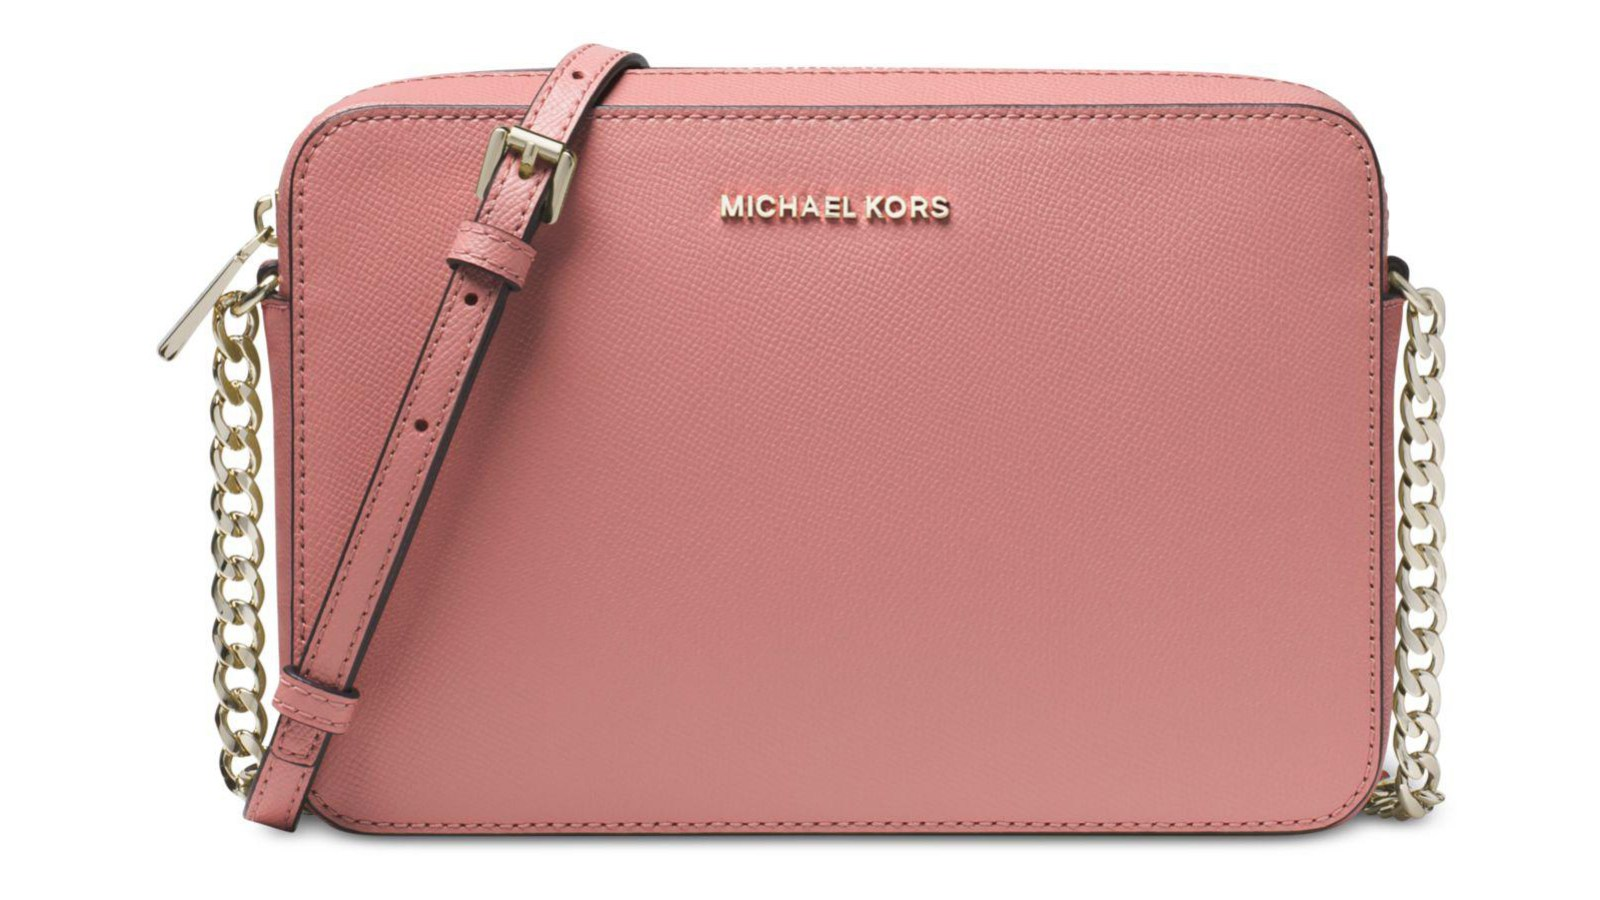 e62a52af2a4a Hurry! This Top-Rated Michael Kors Bag Is Only  100 Right Now